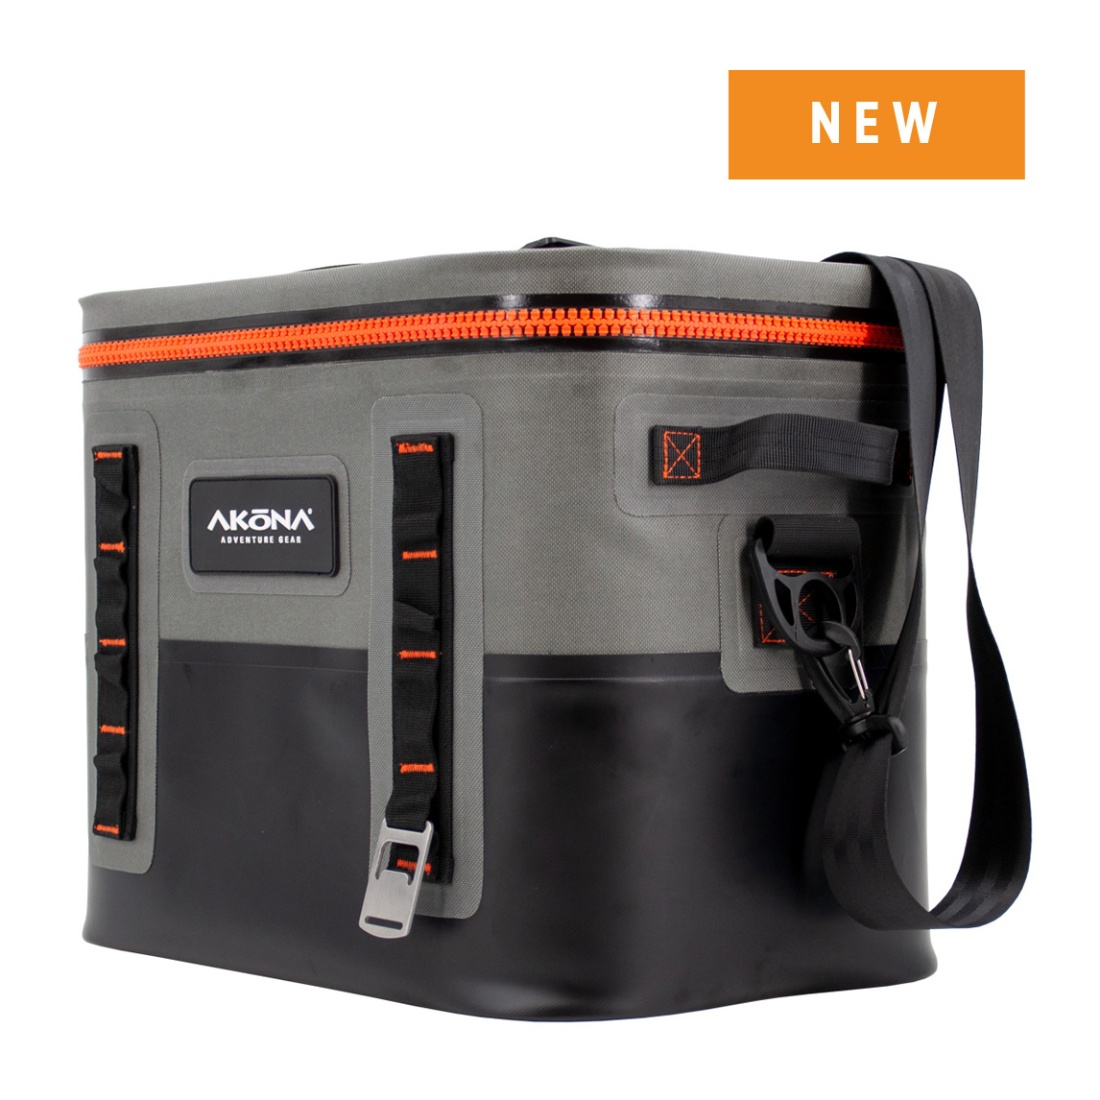 FARGO RECTANGLE SOFT COOLER - AKB910